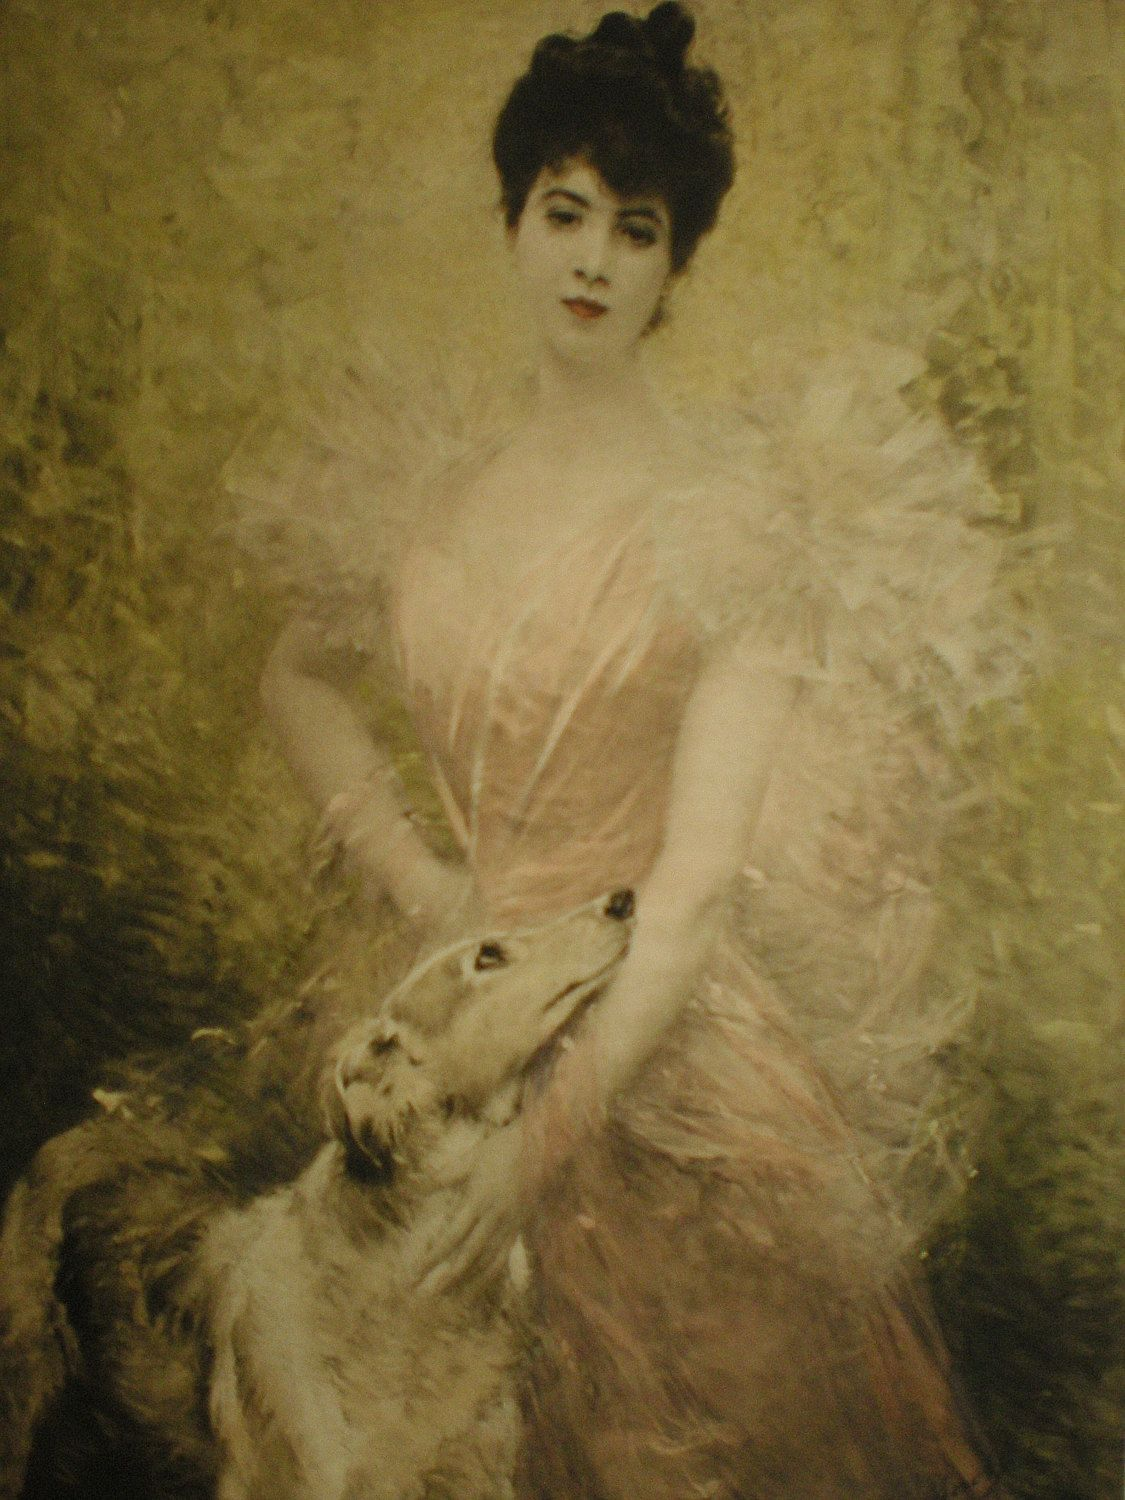 ❤ =^..^= ❤ deerauthor: Antique PRINT Hand-tinted Photogravure by Aime Morot / Mademoiselle Brice with Borzoi Greyhound Whippet Dog / Pink Brown Gold Sepia Wall Art